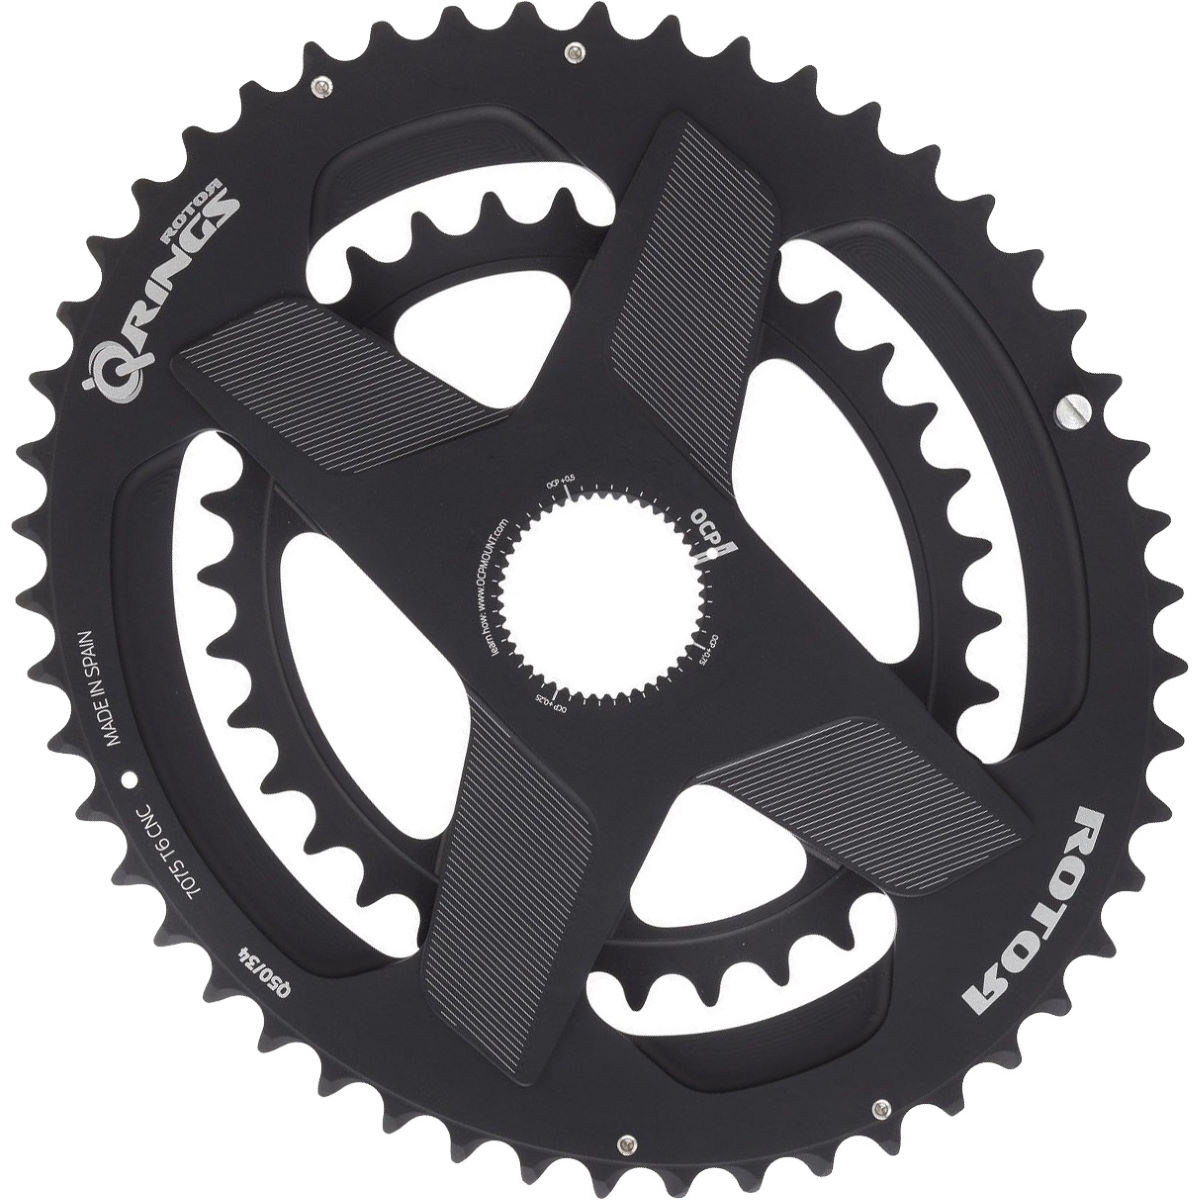 ComprarRotor Q Rings DM Oval Chainrings - Platos